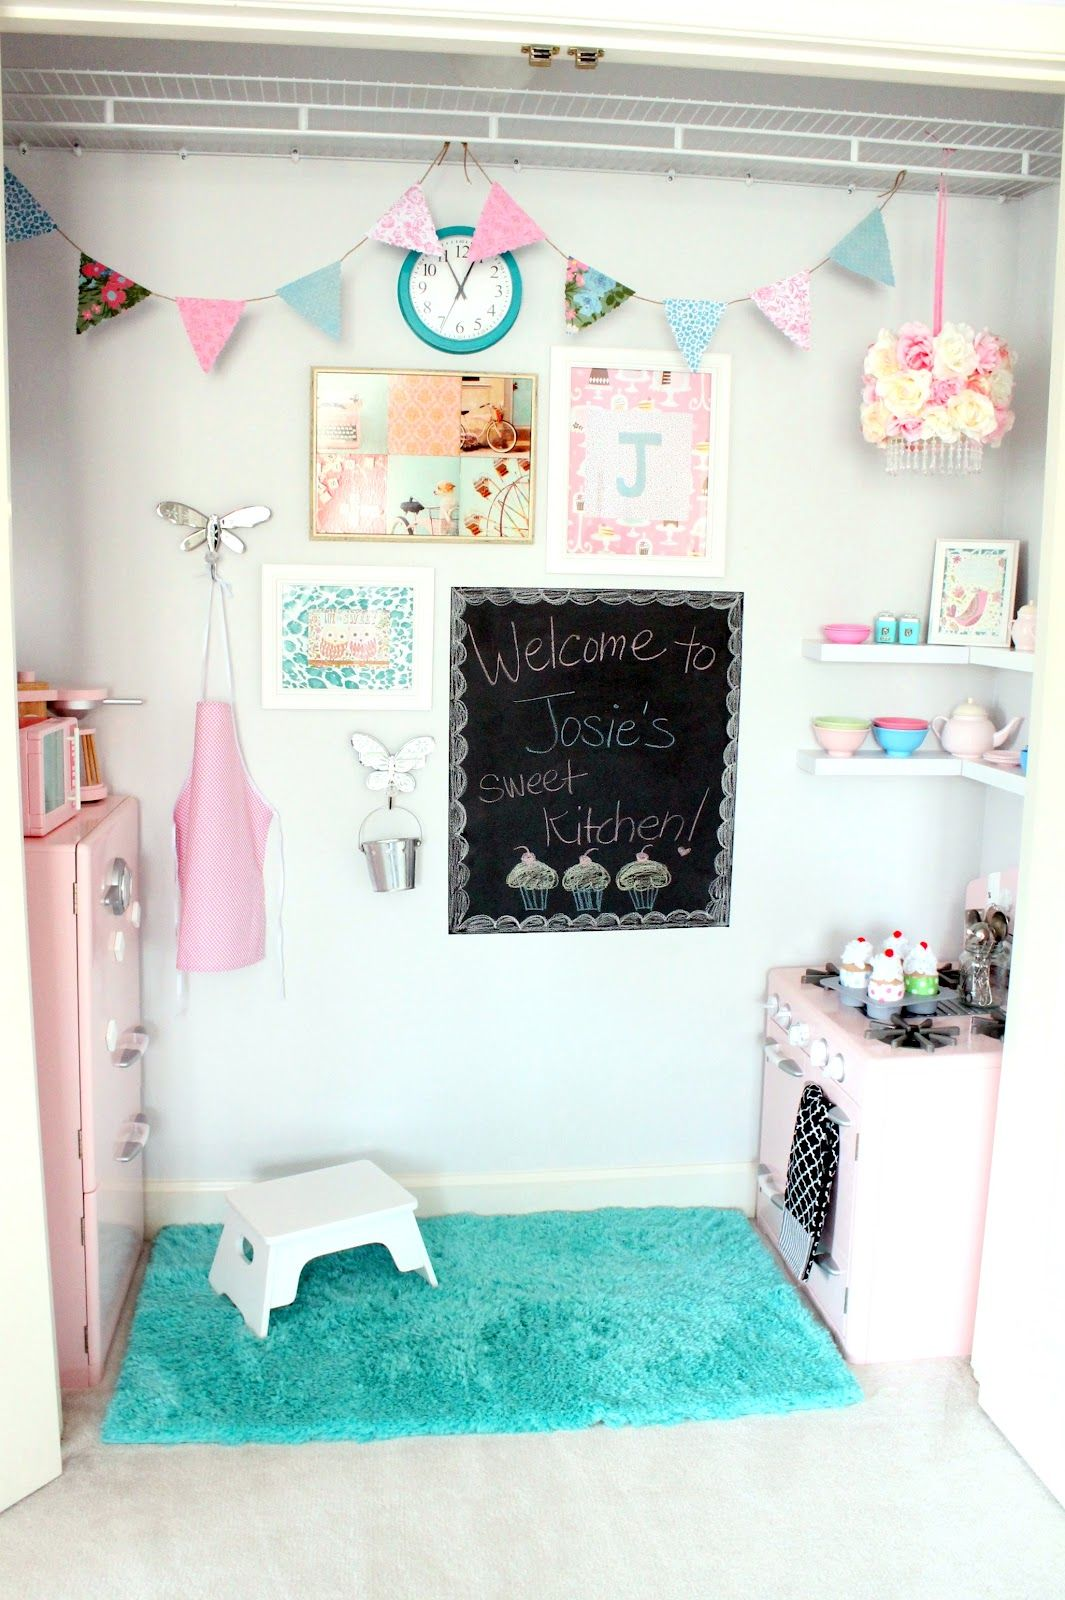 A Play Kitchen in the Closet Girls play kitchen